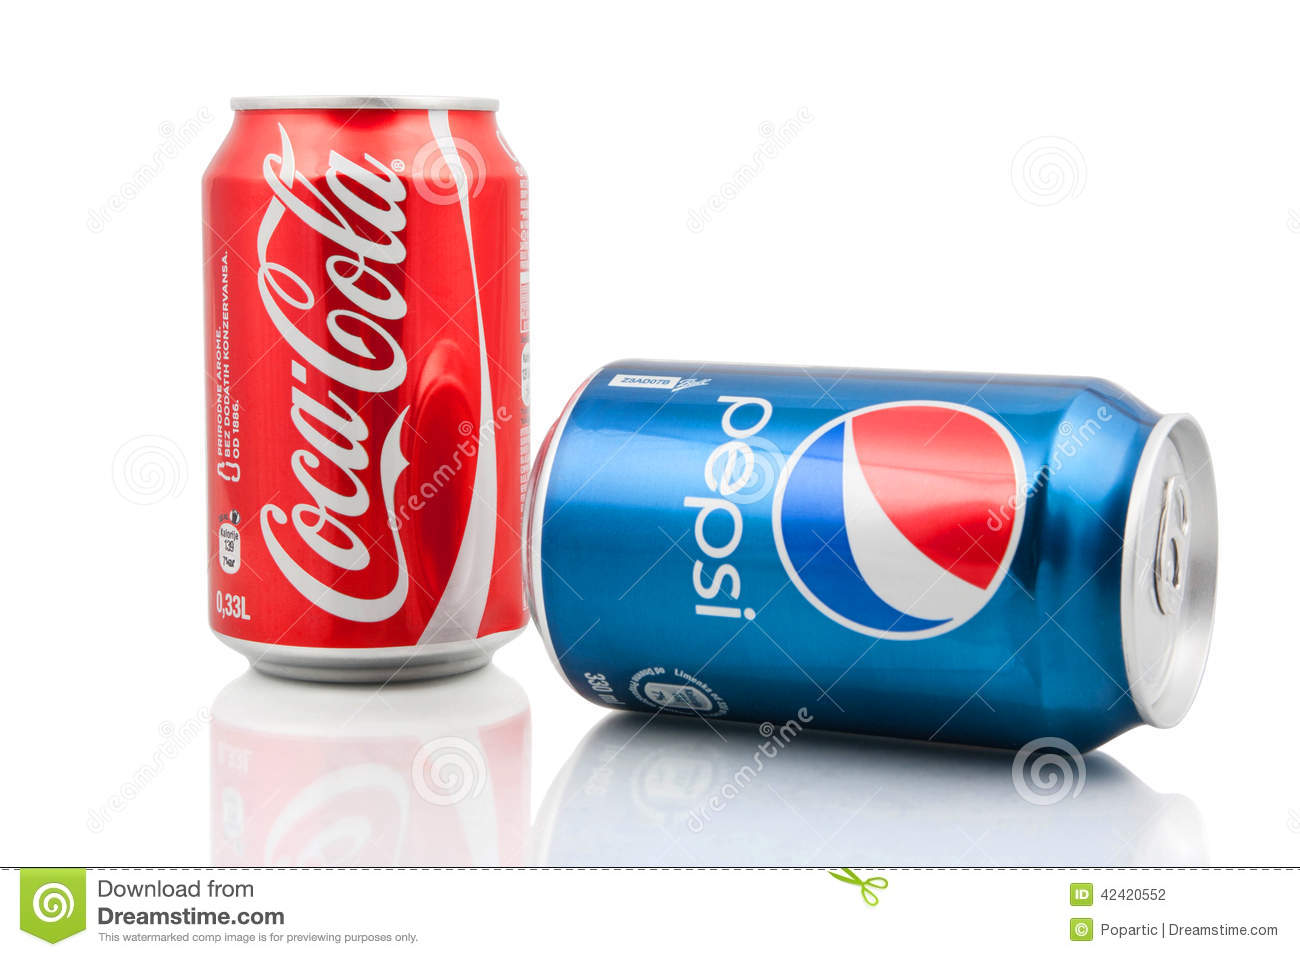 a case study of pepsi and coca cola Case study coca-cola & pepsi harm india's ecologyabstract: the case discusses the controversy surrounding the indian subsidiaries of.